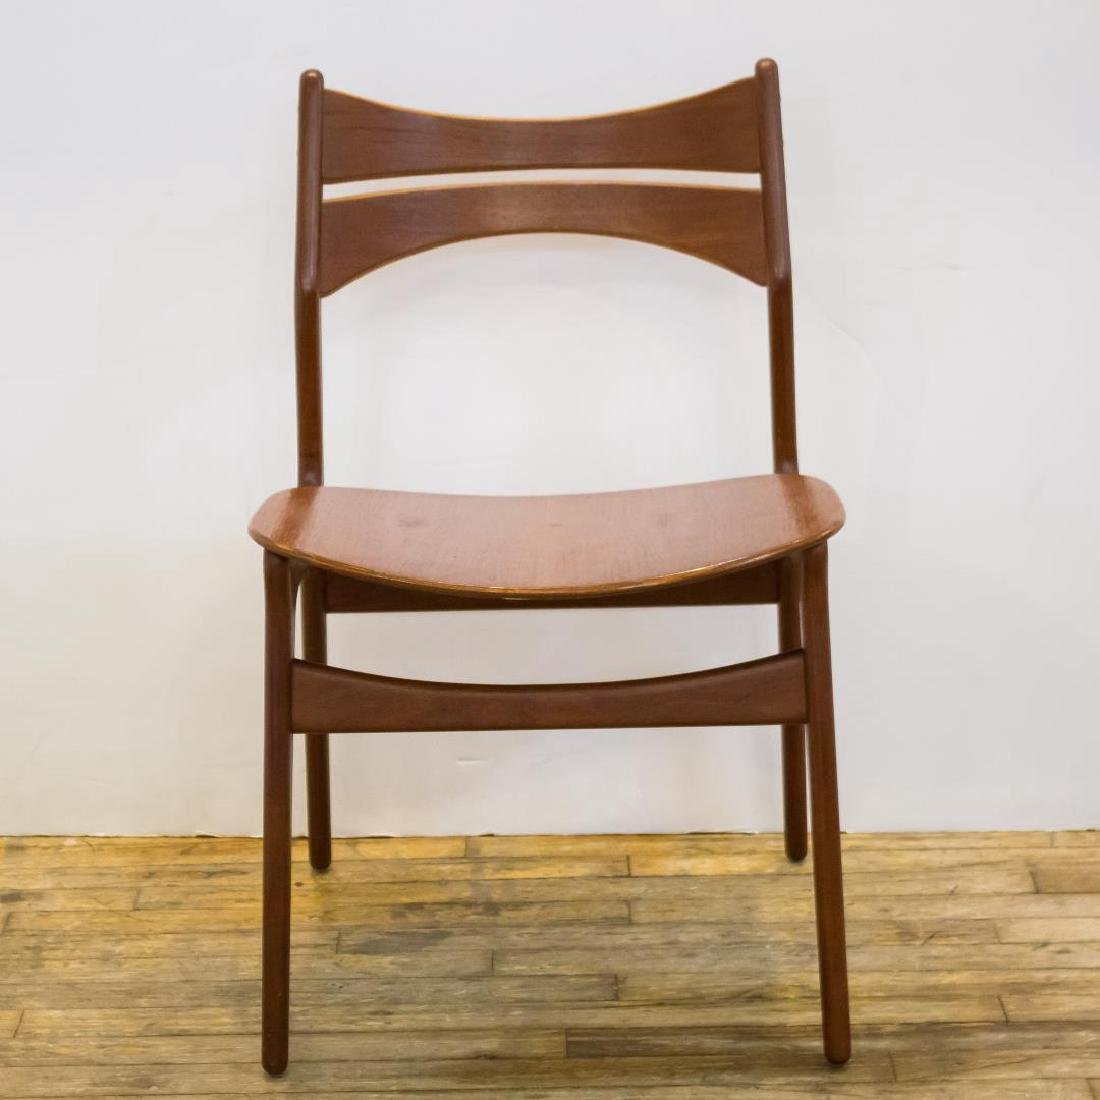 Erik Buck Danish Modern Side Chairs, Set of 4 - 2